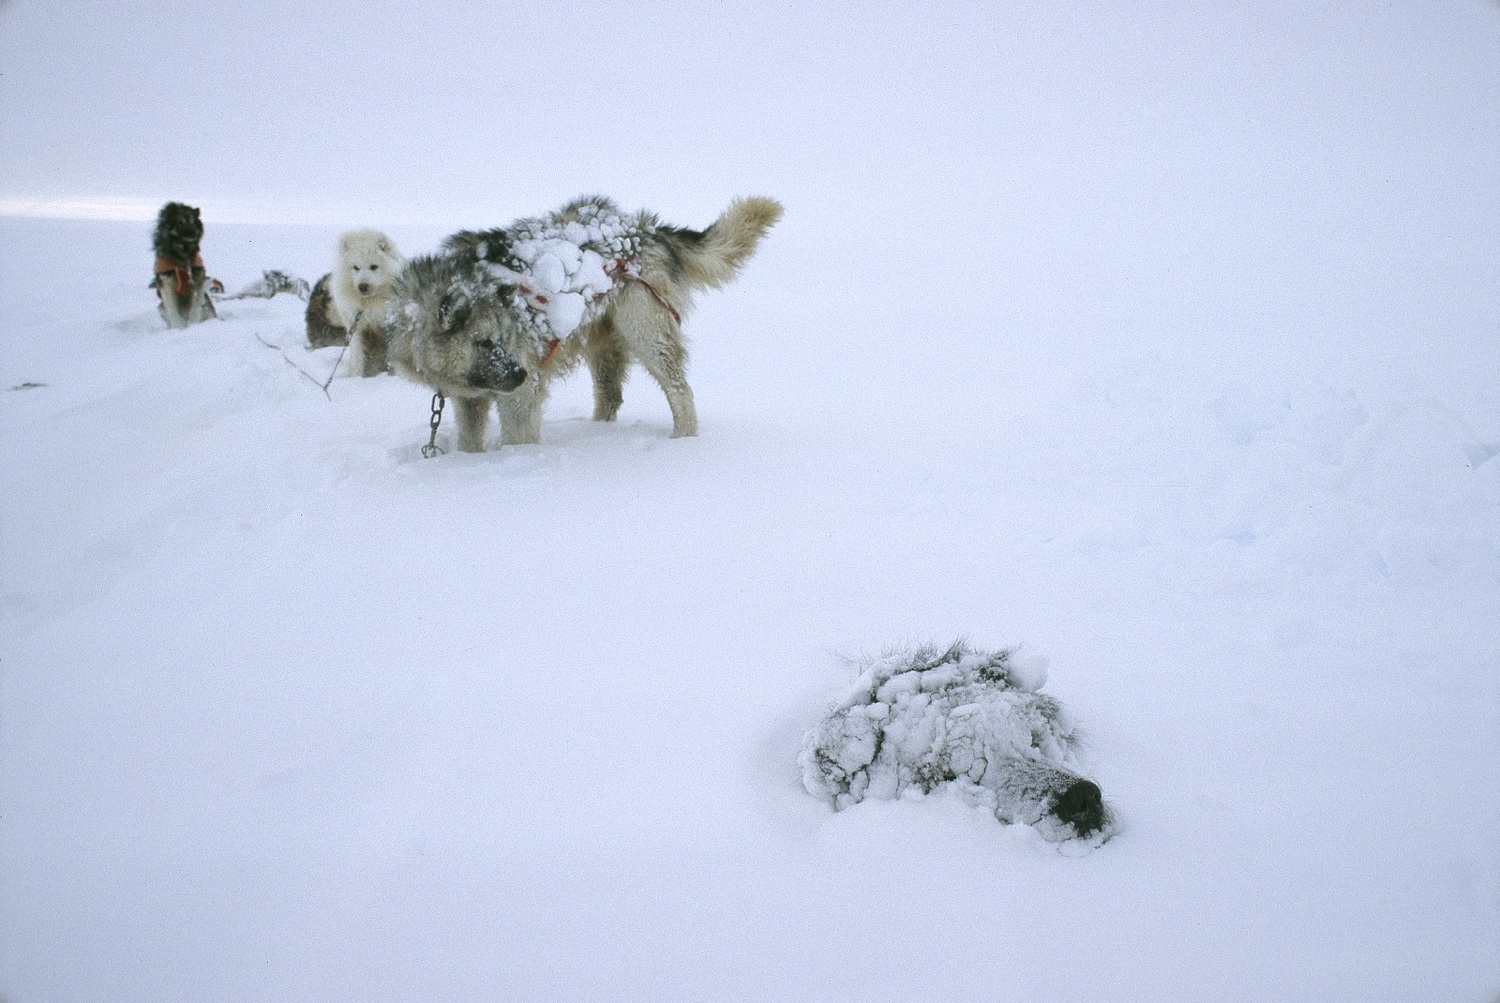 The dogs know the best way to stay warm is to let themselves be covered and insulated by the snow all night, much as Keizo did when he was lost in a blizzard. ©Trans-Antarctica Photo by Per Breiehagen